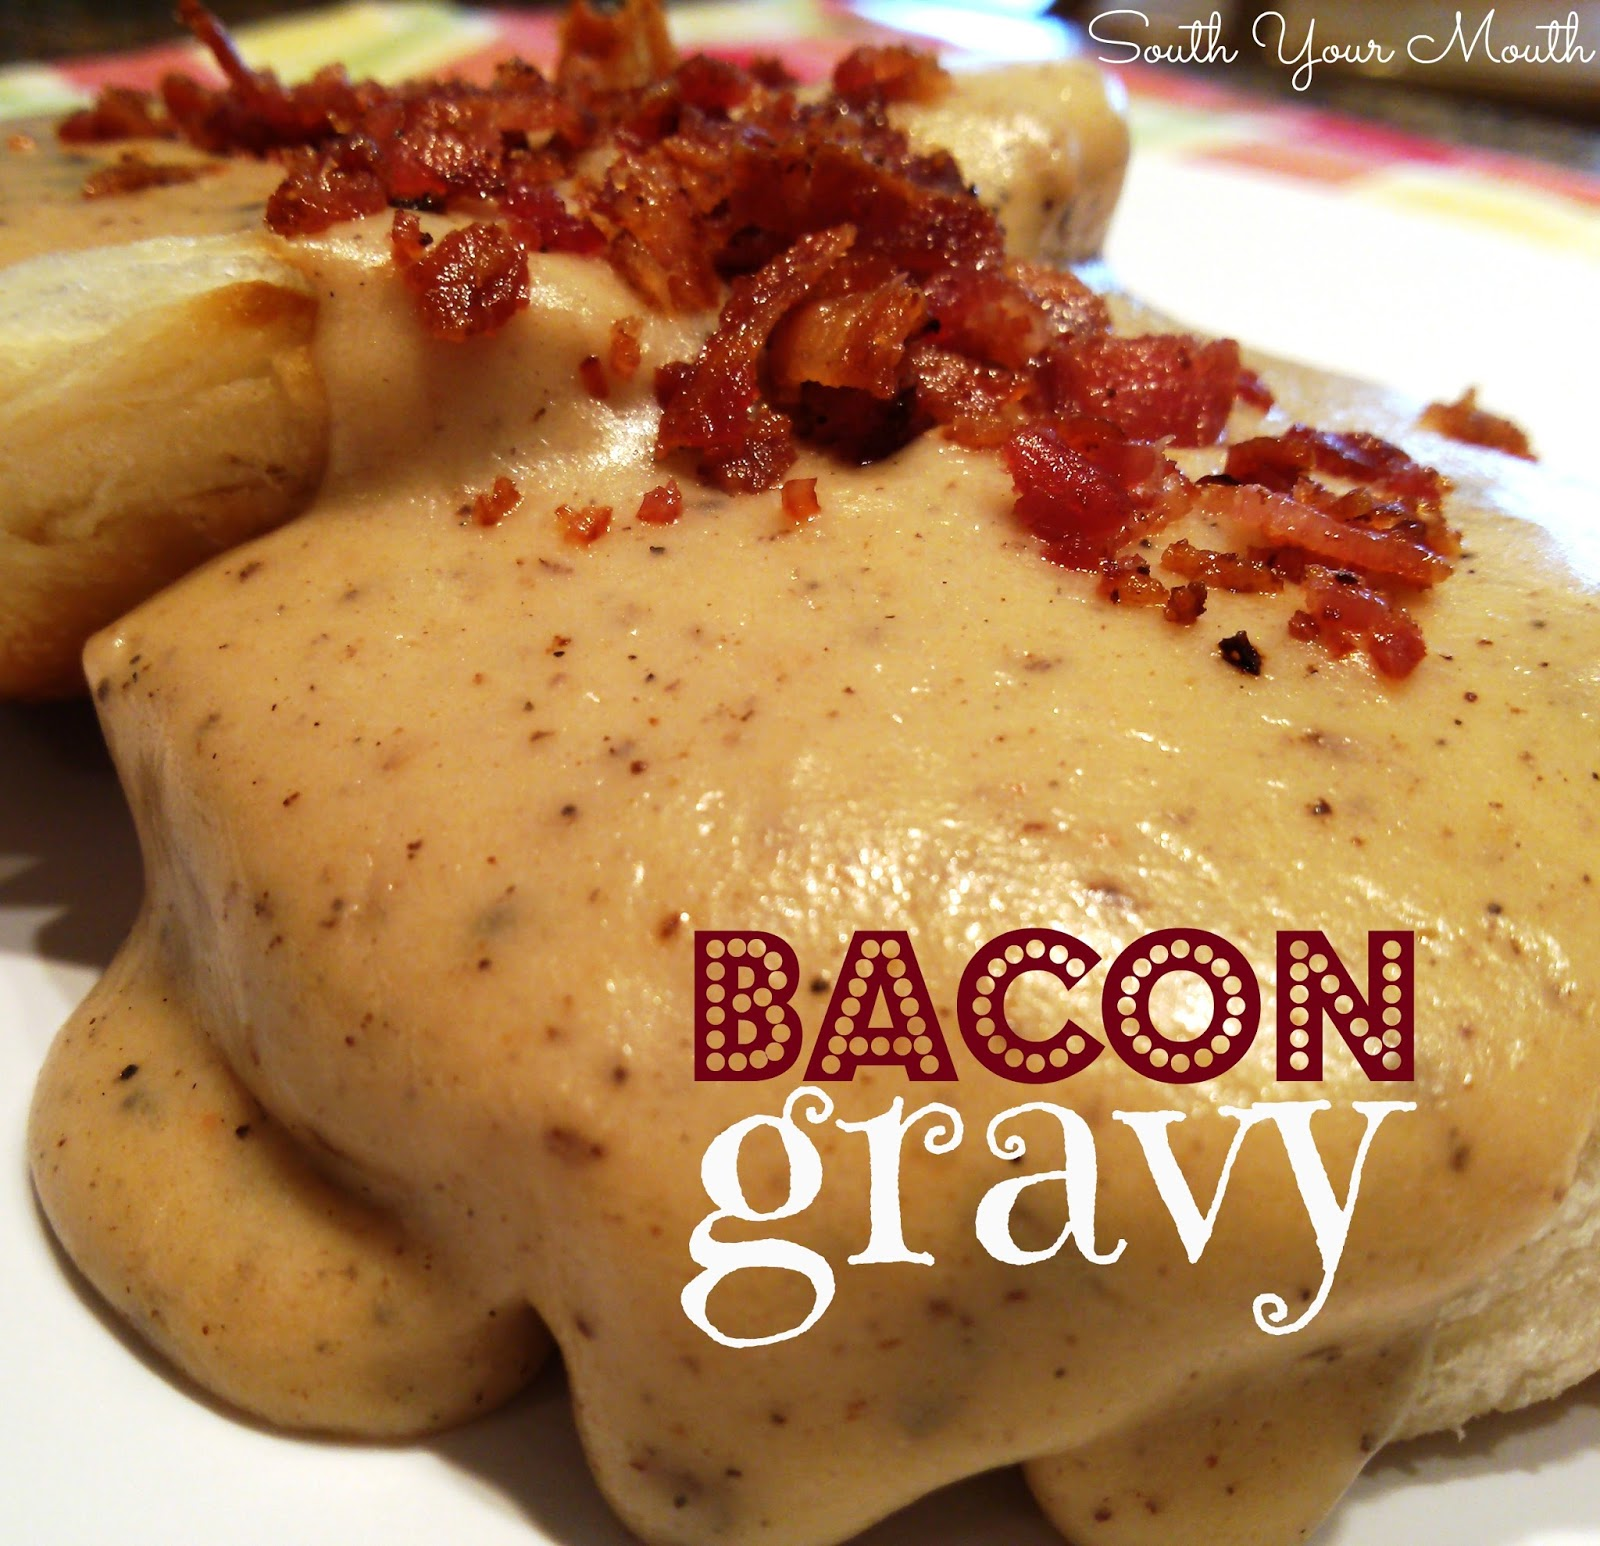 Rich country gravy made from bacon drippings served over biscuits or toast.